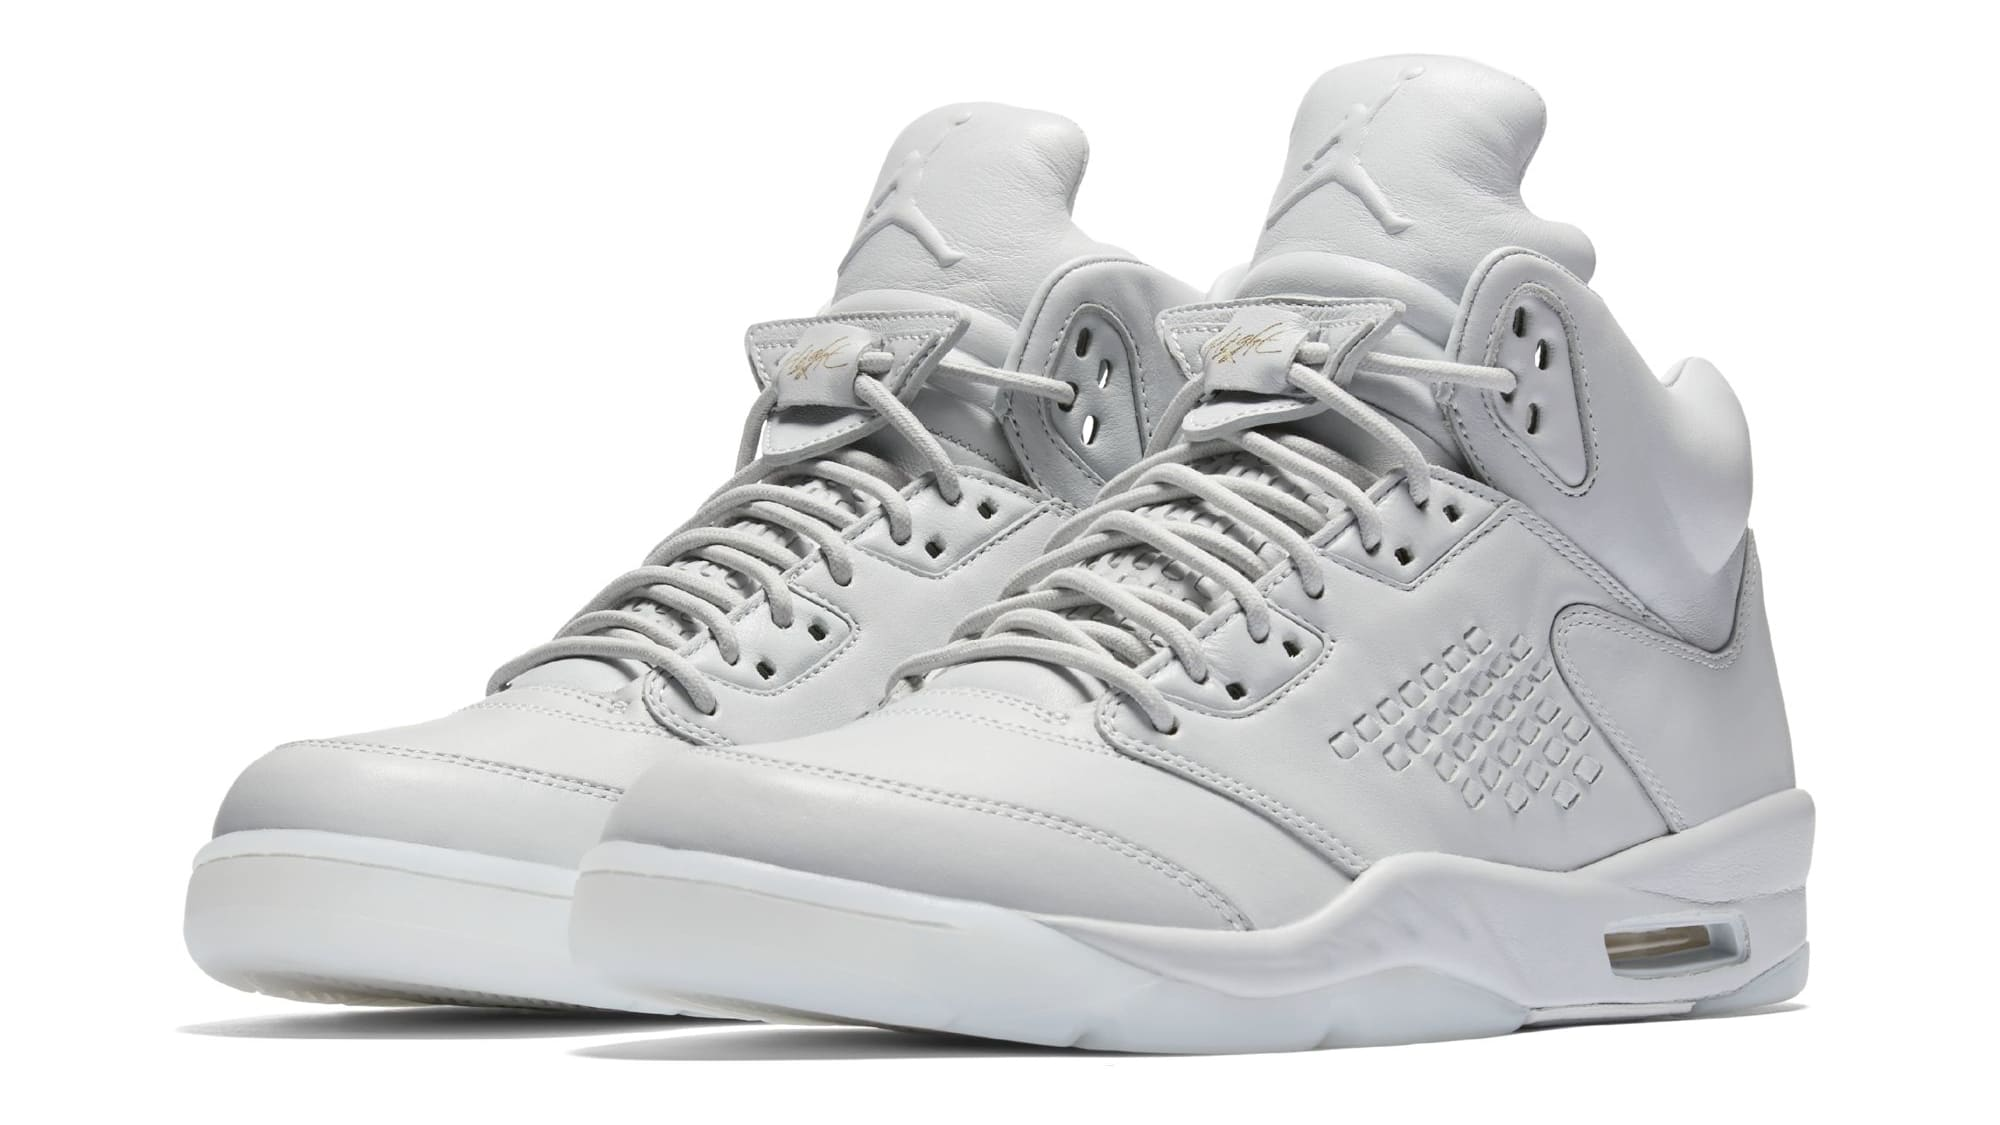 new styles a3292 d9e2d Here is a look at the upcoming Air Jordan 5 Premium